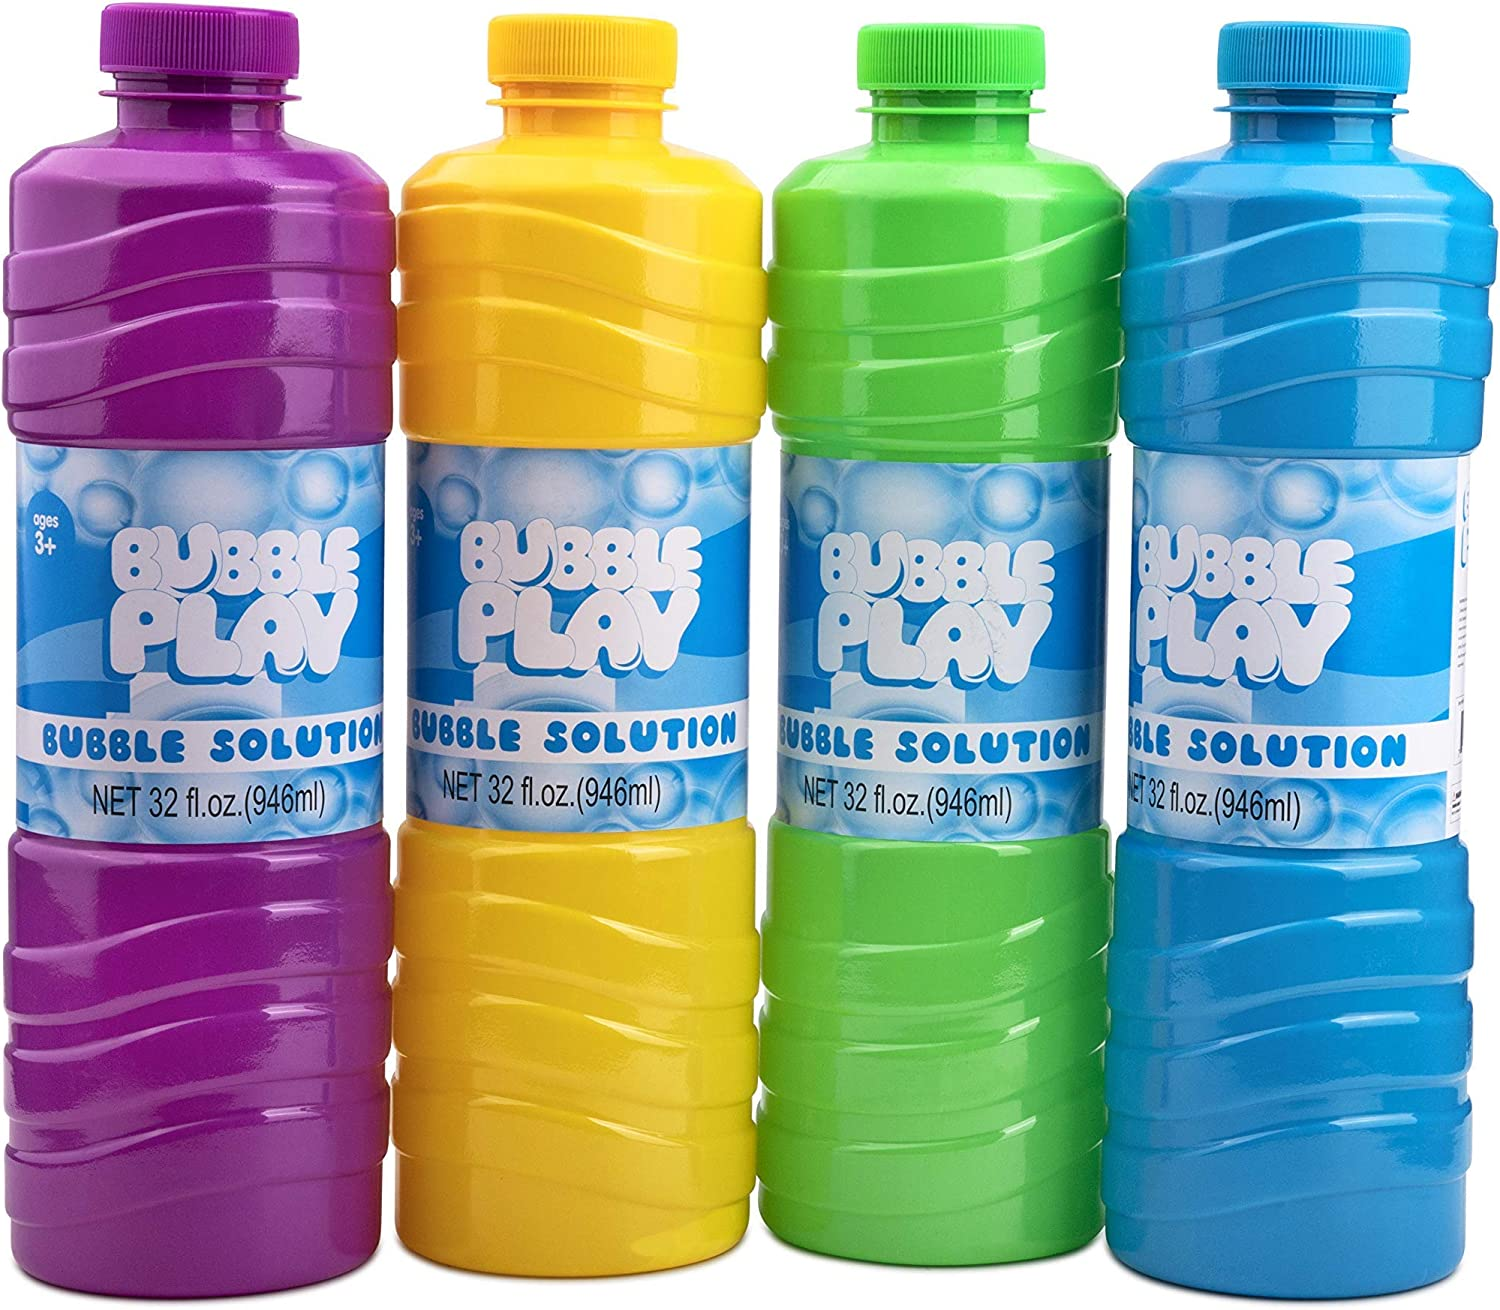 BubblePlay Bubble Solution Refill - 4 Pack Bubbles for Kids 32 O